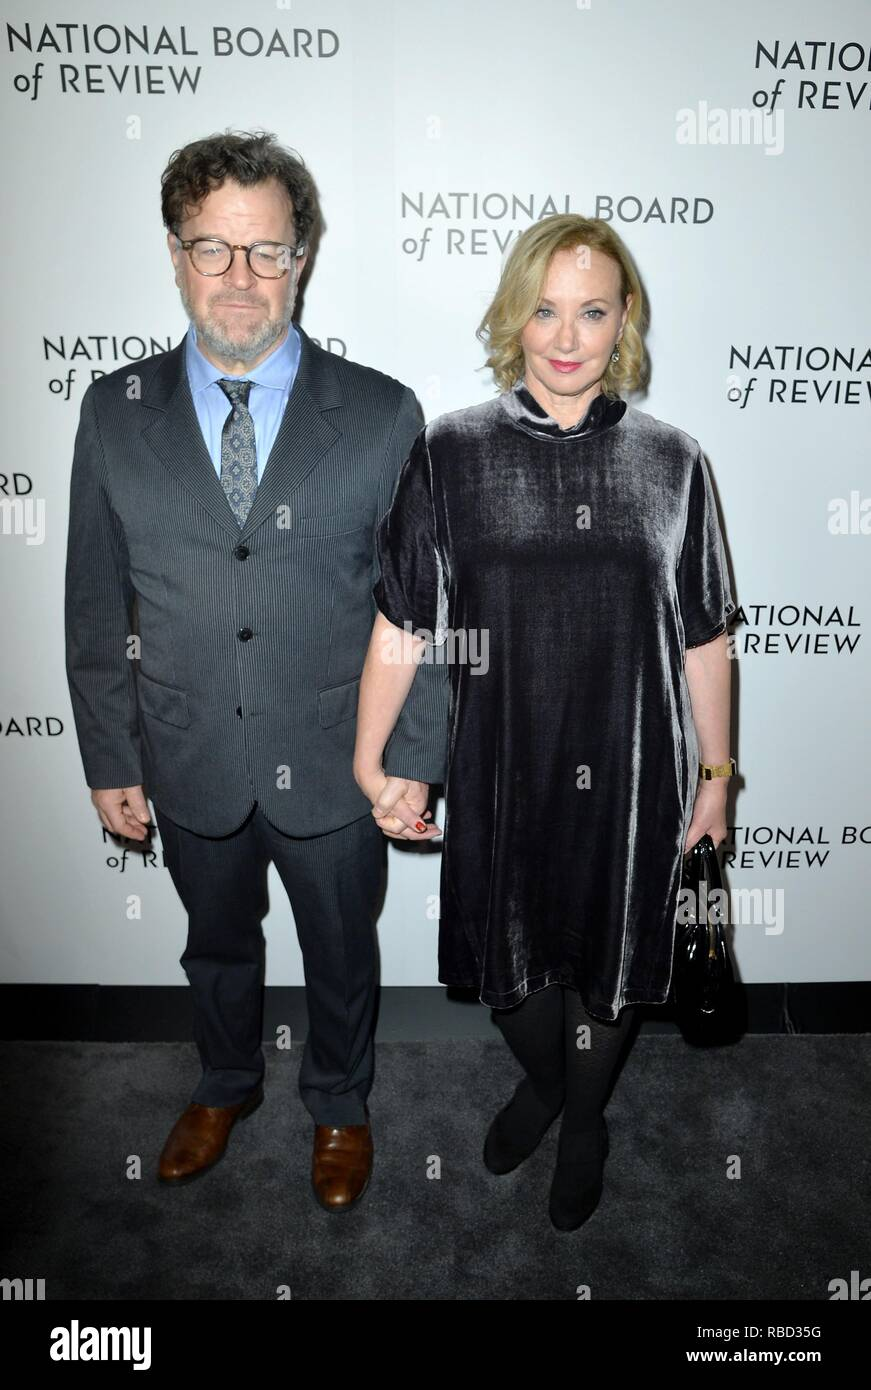 New York, NY, USA. 8th Jan, 2019. Kenneth Lonergan, J Smith Cameron at arrivals for National Board of Review (NBR) Awards Gala, Cipriani 42nd Street, New York, NY January 8, 2019. Credit: Kristin Callahan/Everett Collection/Alamy Live News - Stock Image